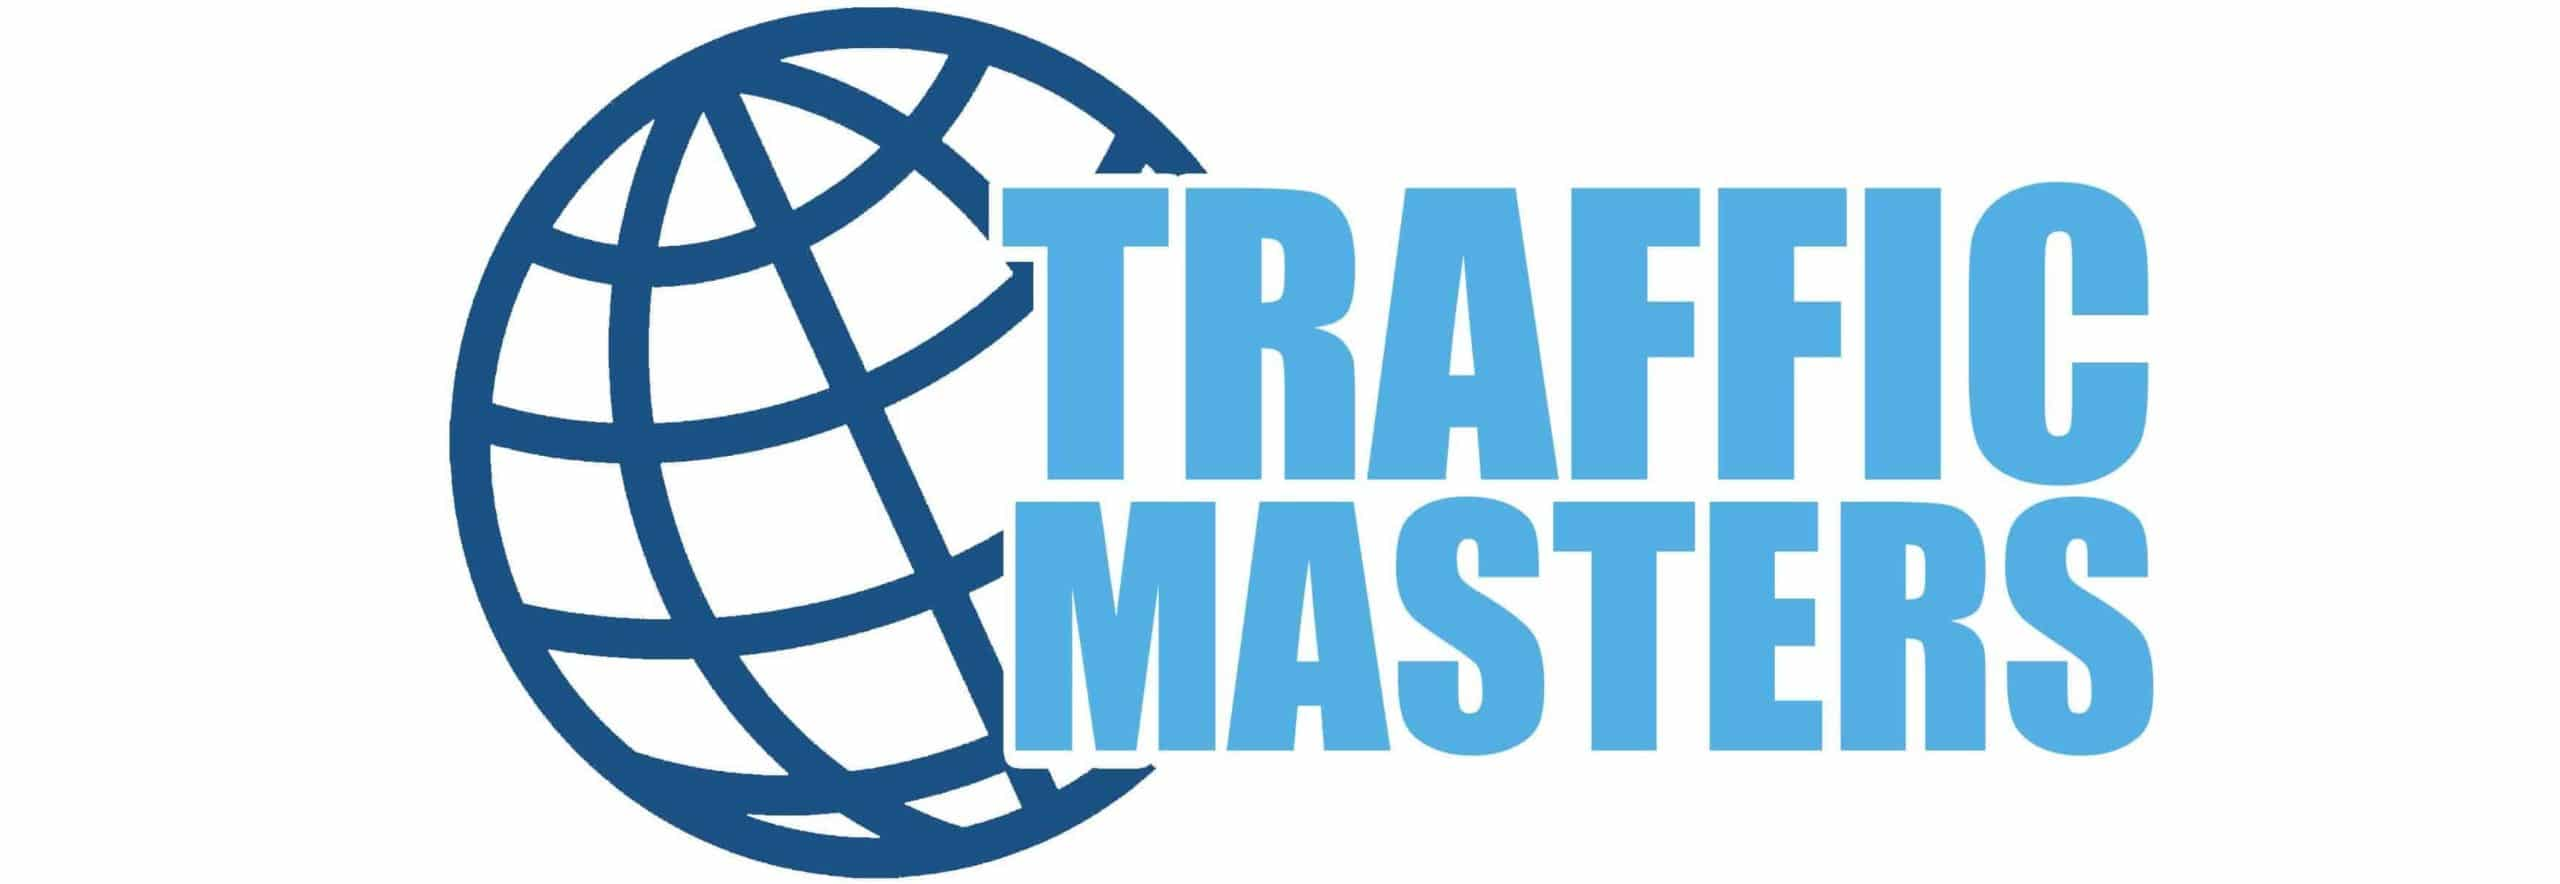 Buy Website Traffic & Increase Your Visitors • Traffic Masters